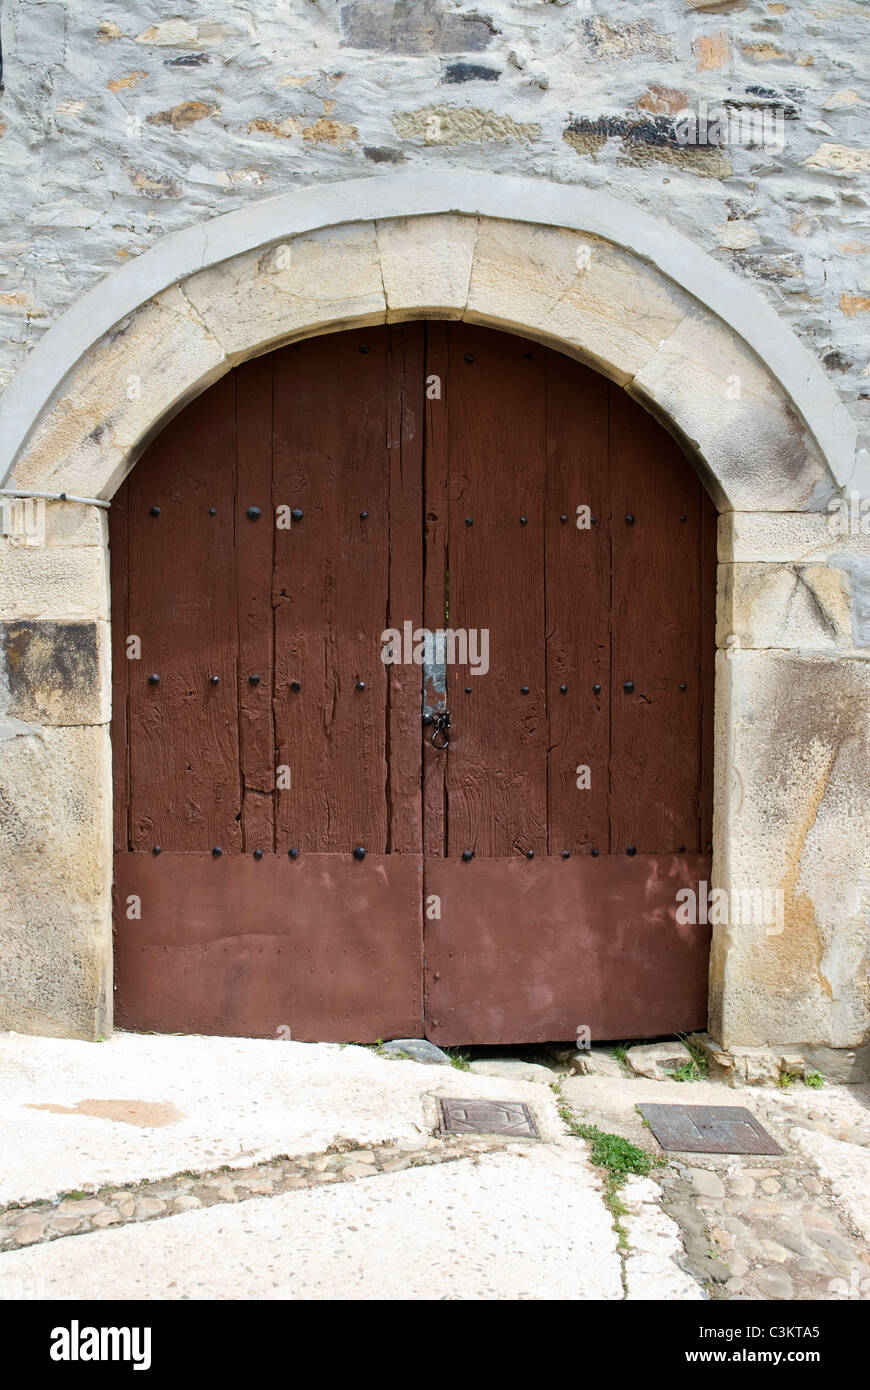 Traditional arched wooden doorway along the pilgrimage route, Camino de Santiago, Northern Spain - Stock Image